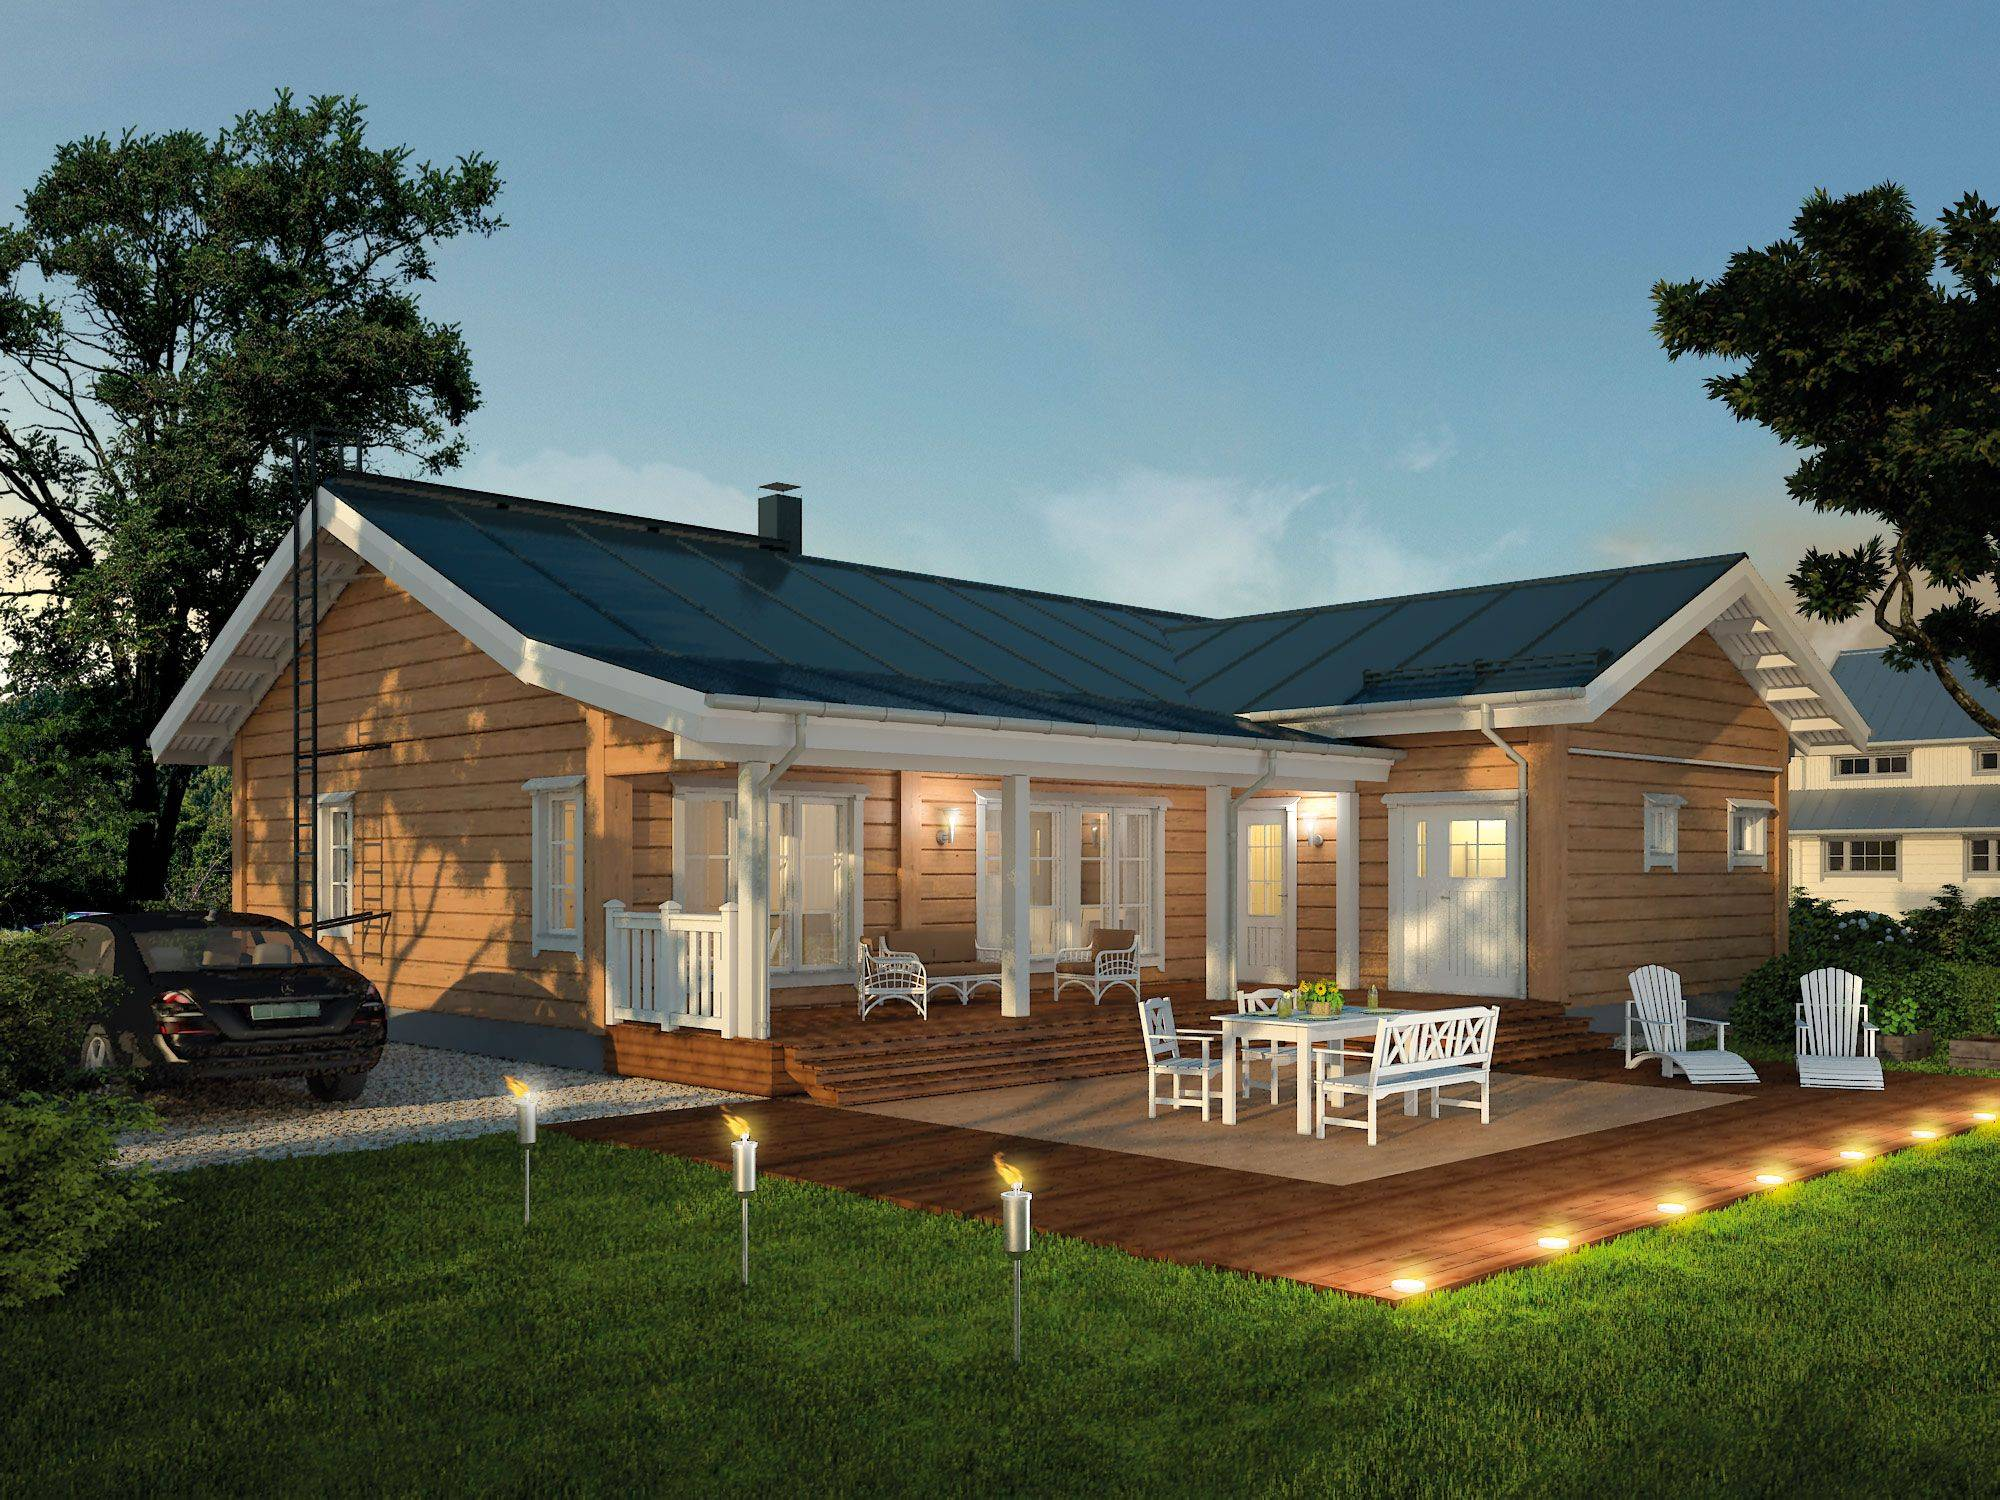 Cost Of Modular Homes Awesome Affordable Modular Homes Unique Architecture Design Ideas